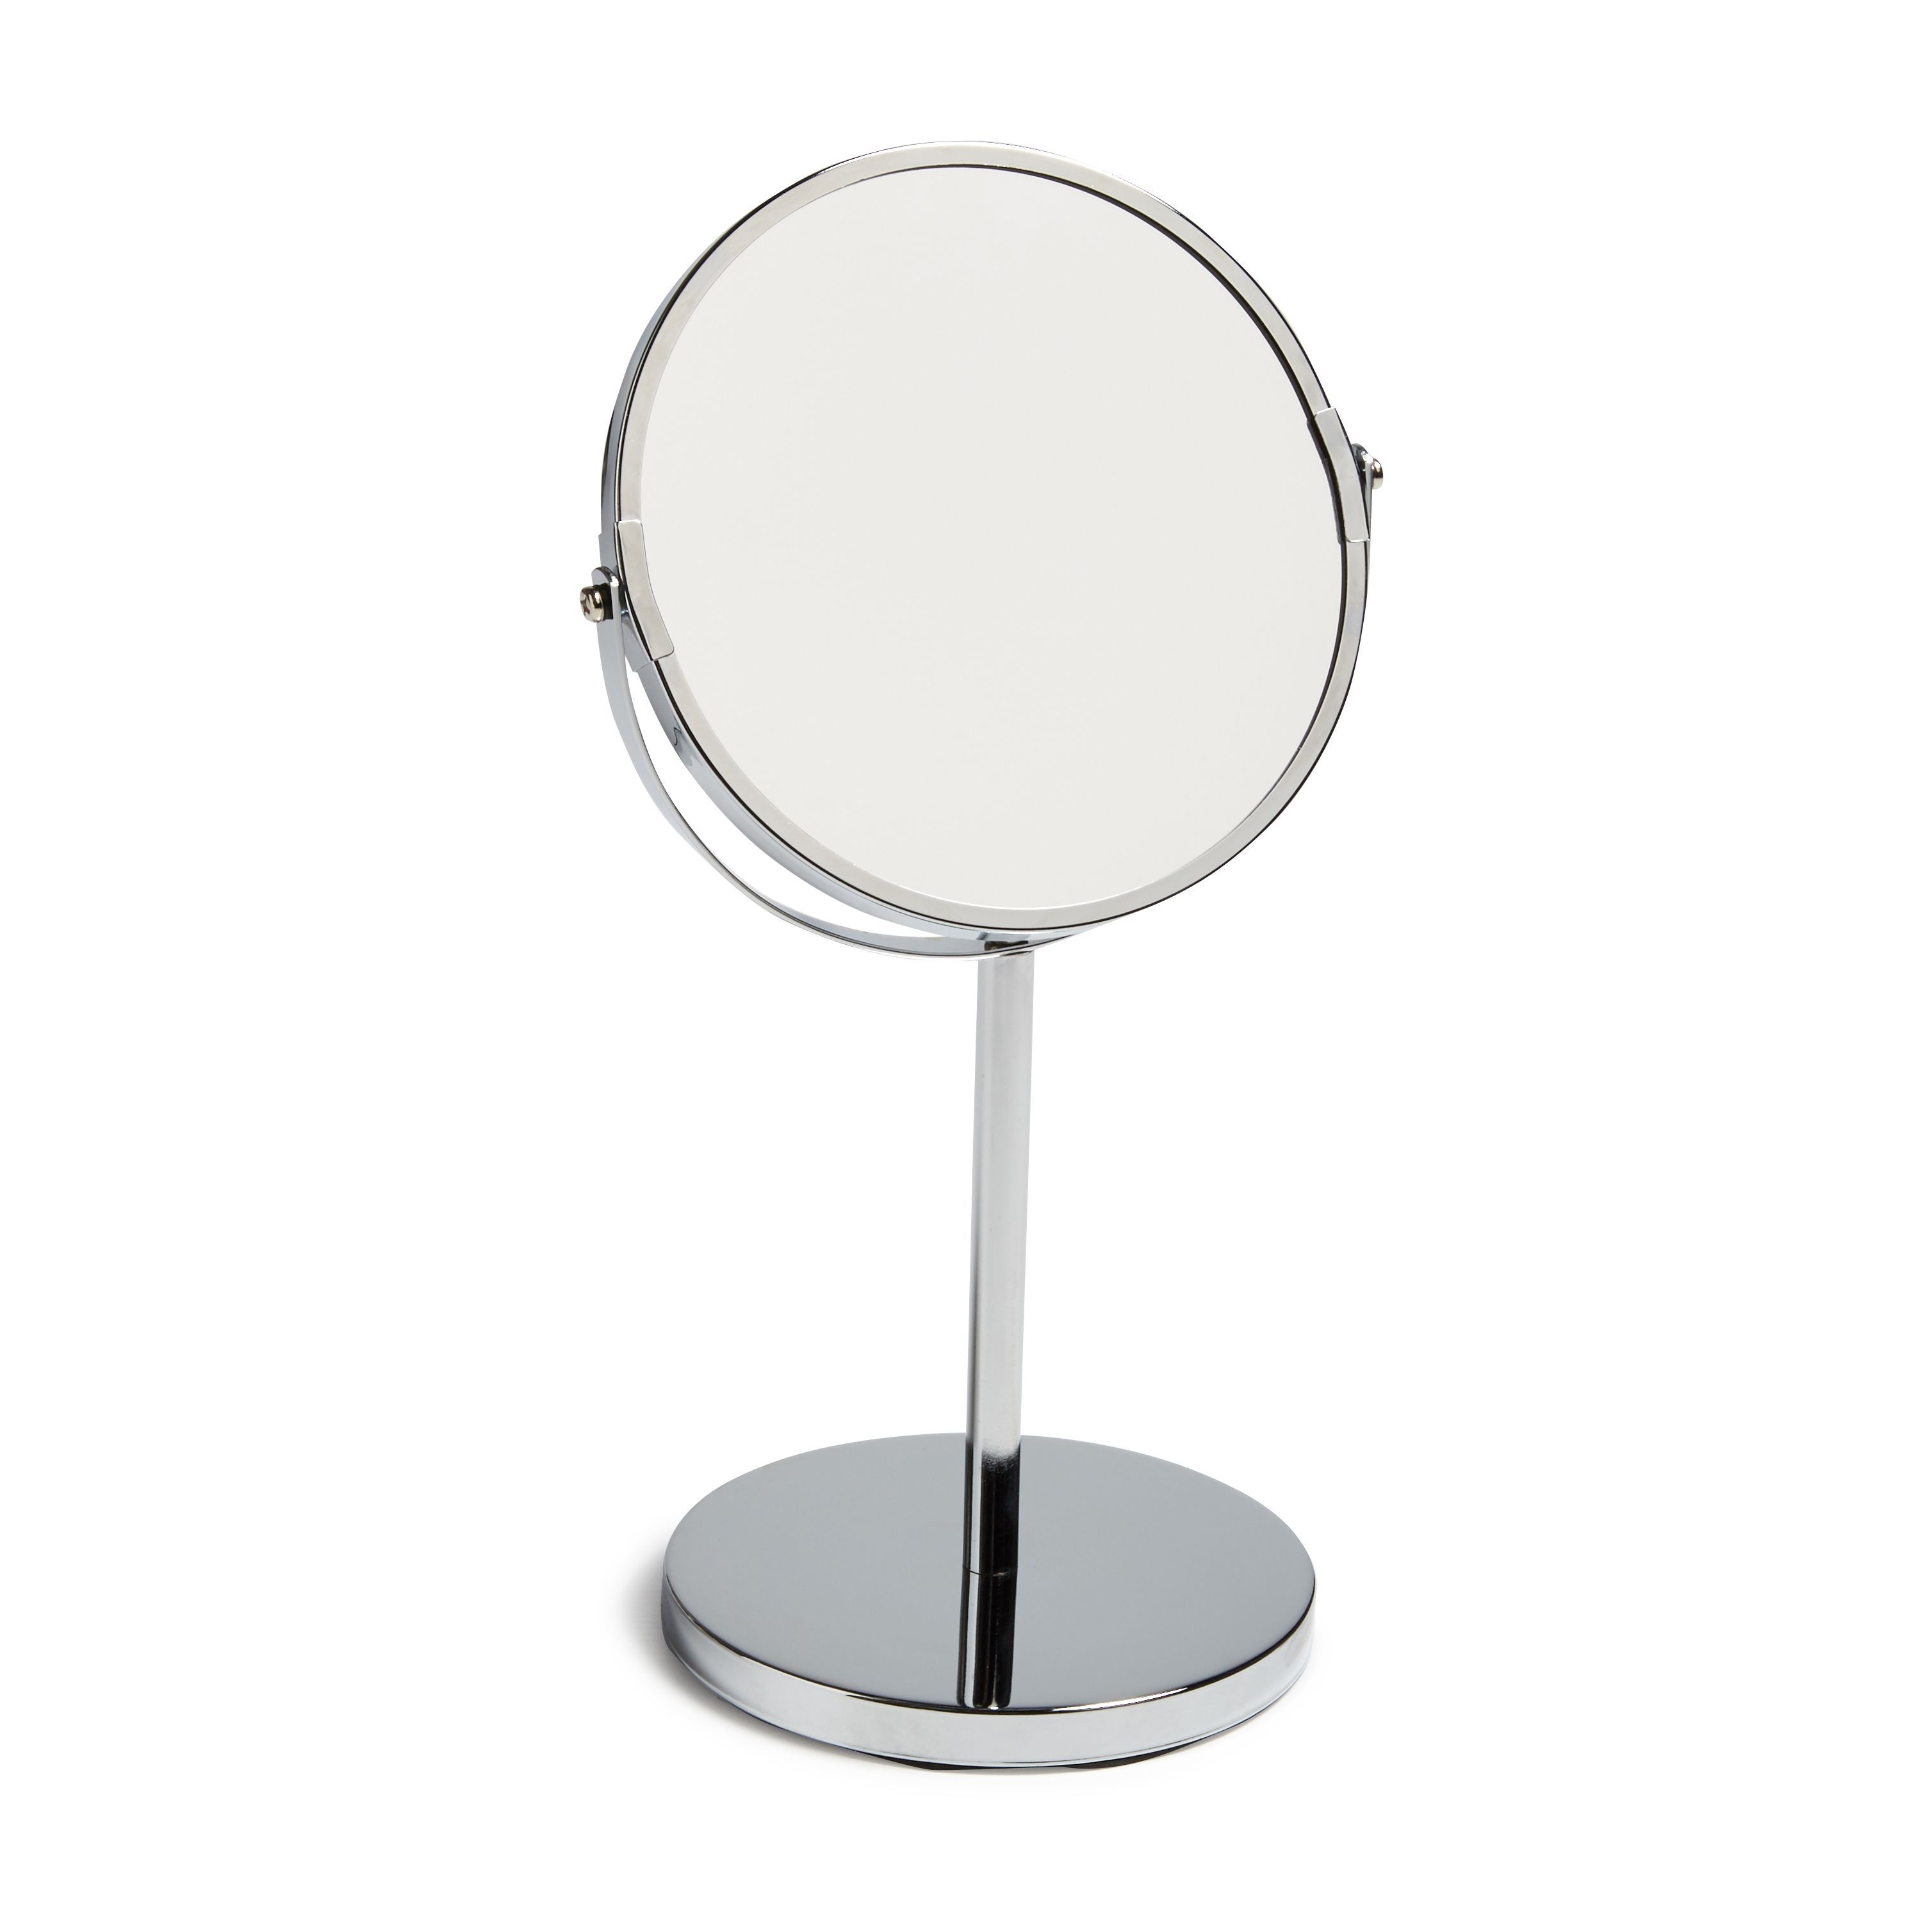 Cooke and lewis bathroom mirrors - Cooke Lewis Solitaria Chrome Plated Unframed Circular Mirror H 345mm W